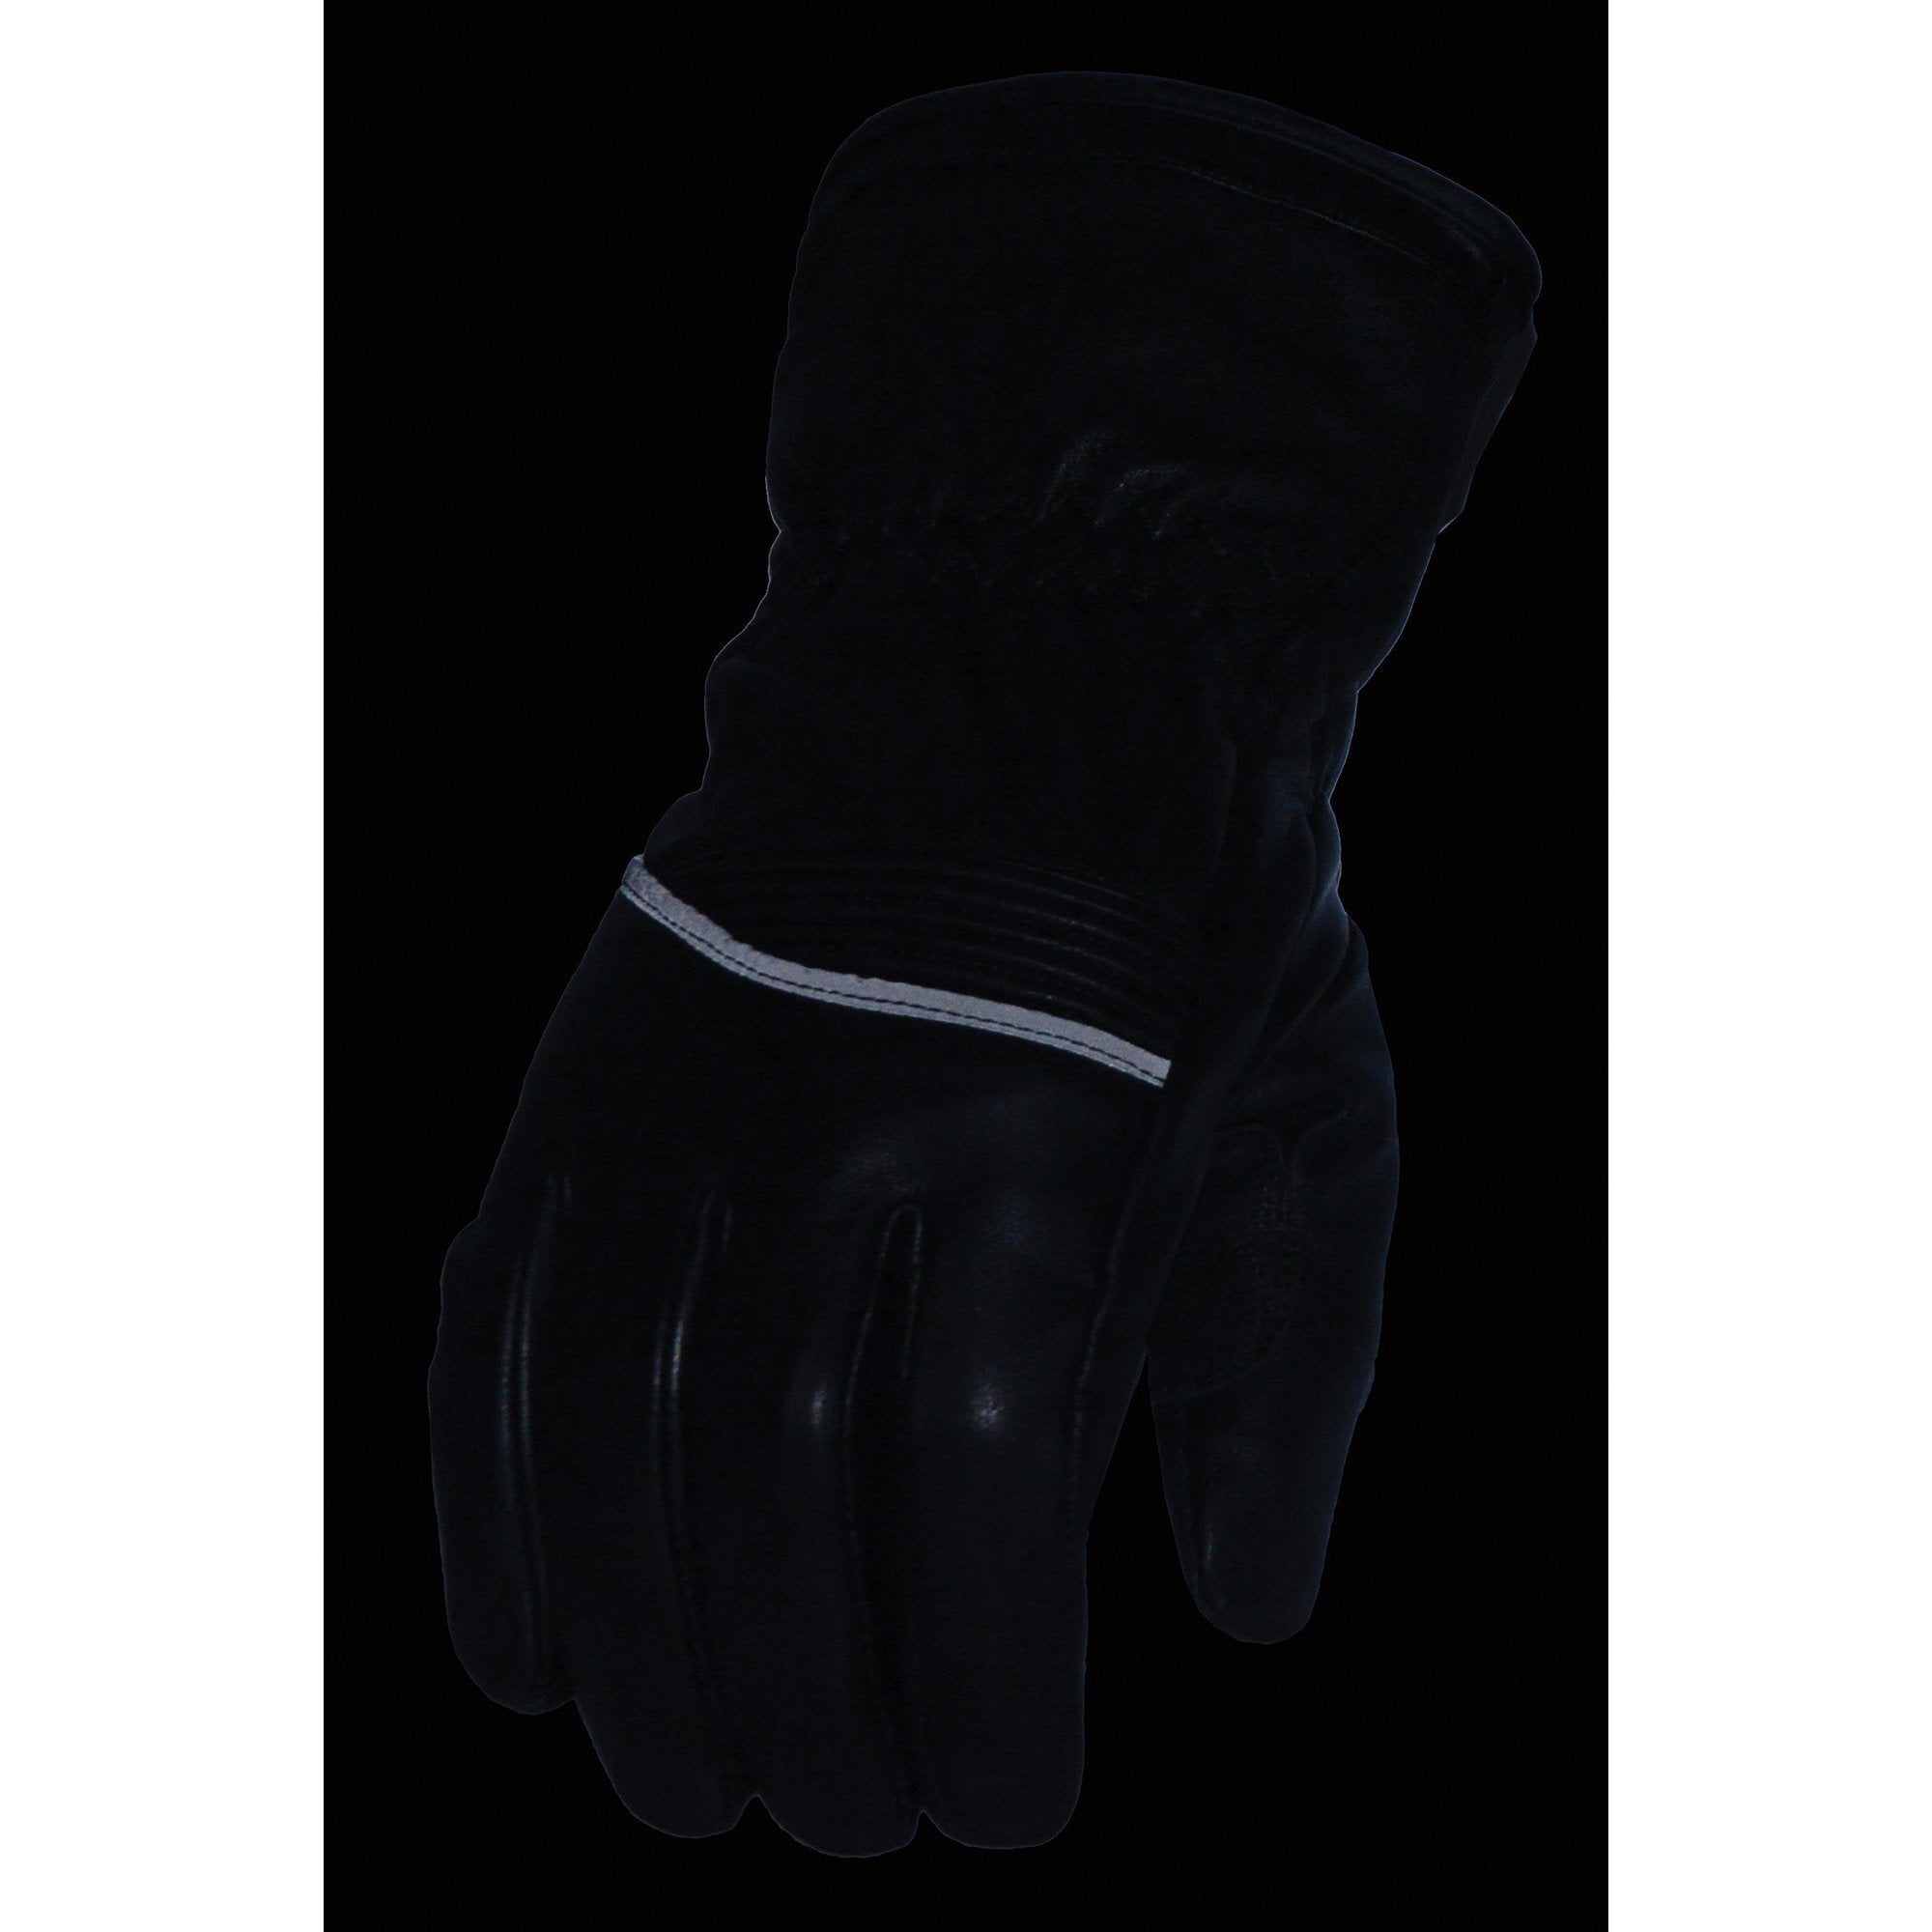 Milwaukee Leather MG7551 Men's 'Touch Screen Fingers' Waterproof Black